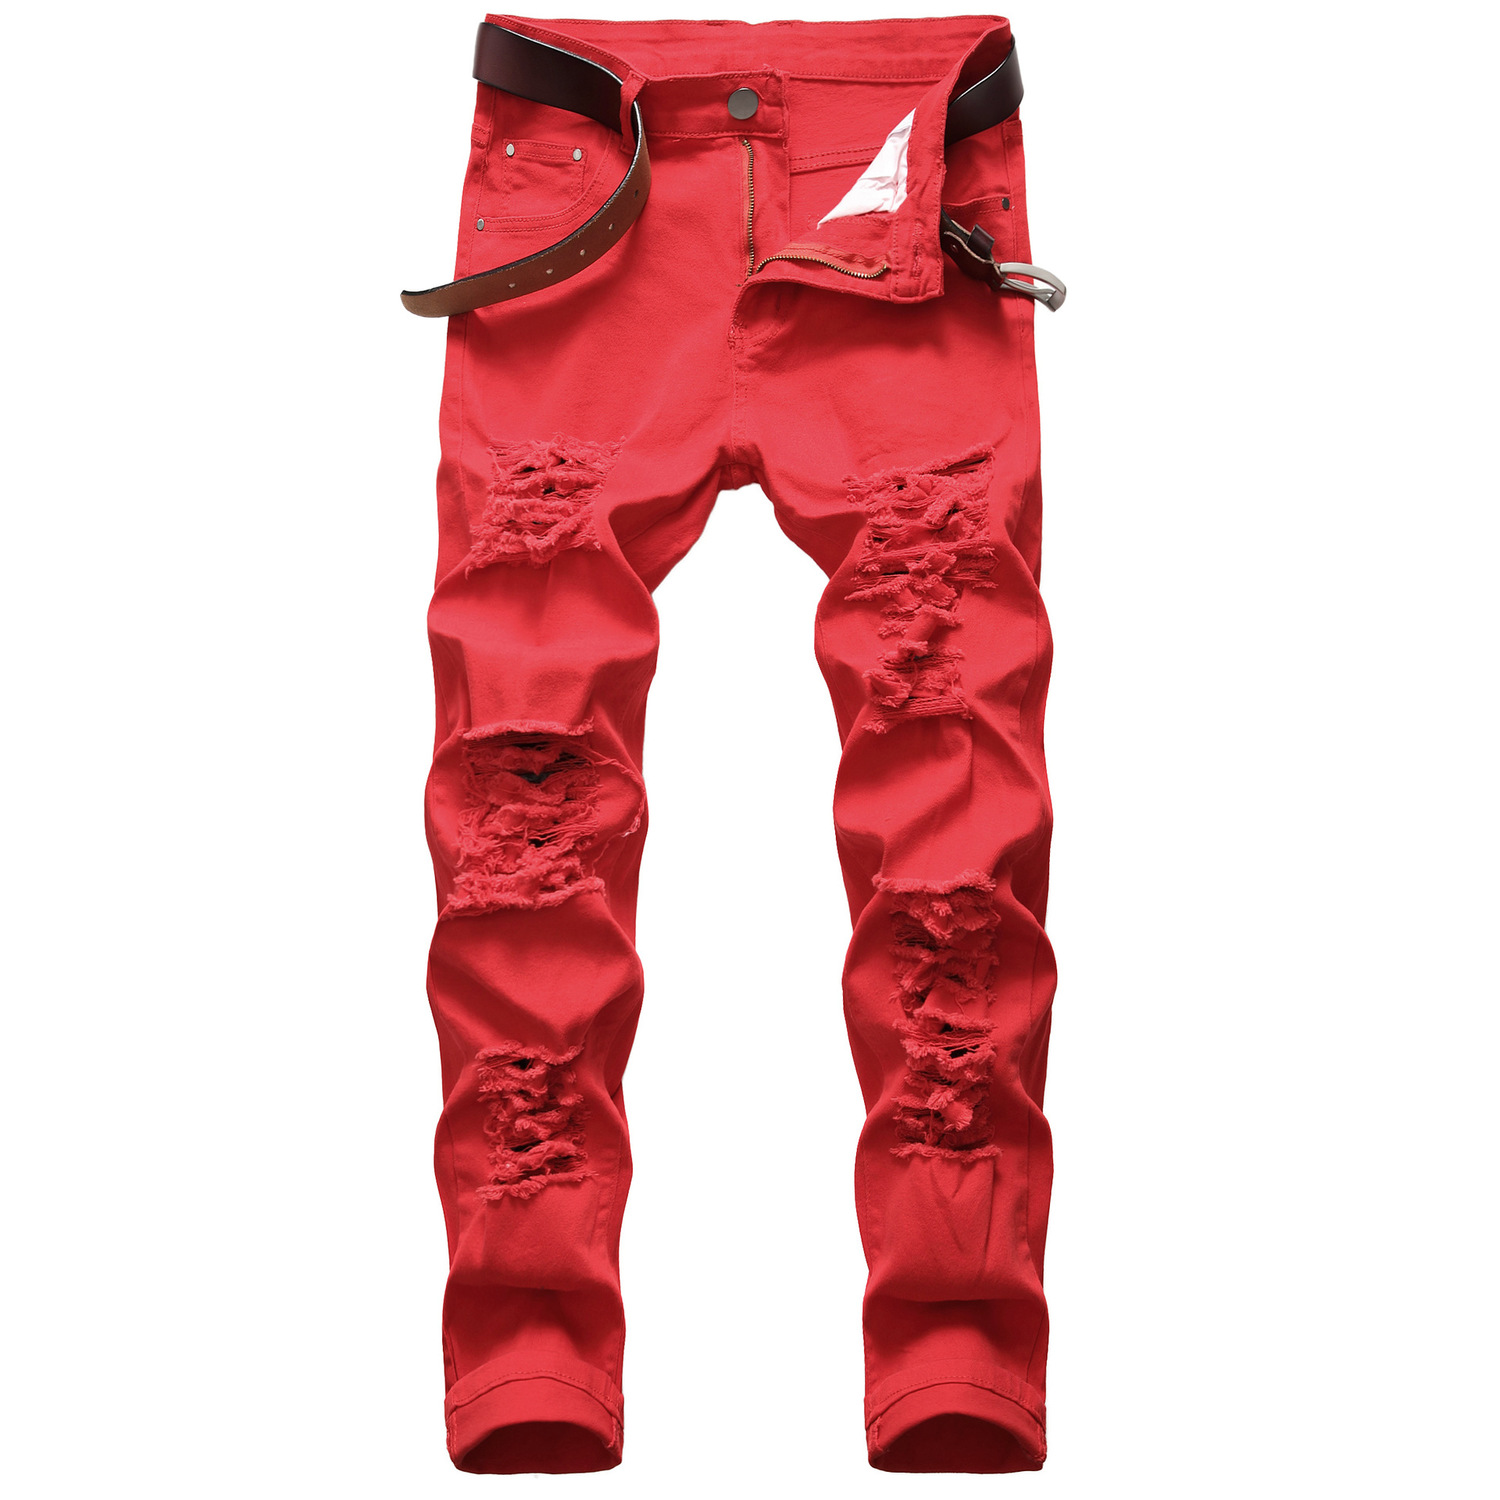 Men's Leisure Holes Elastic Force Jeans Cowboy Male Aristotle Holes White Pants Destroyed Frayed Rip Shredded Tight Trousers